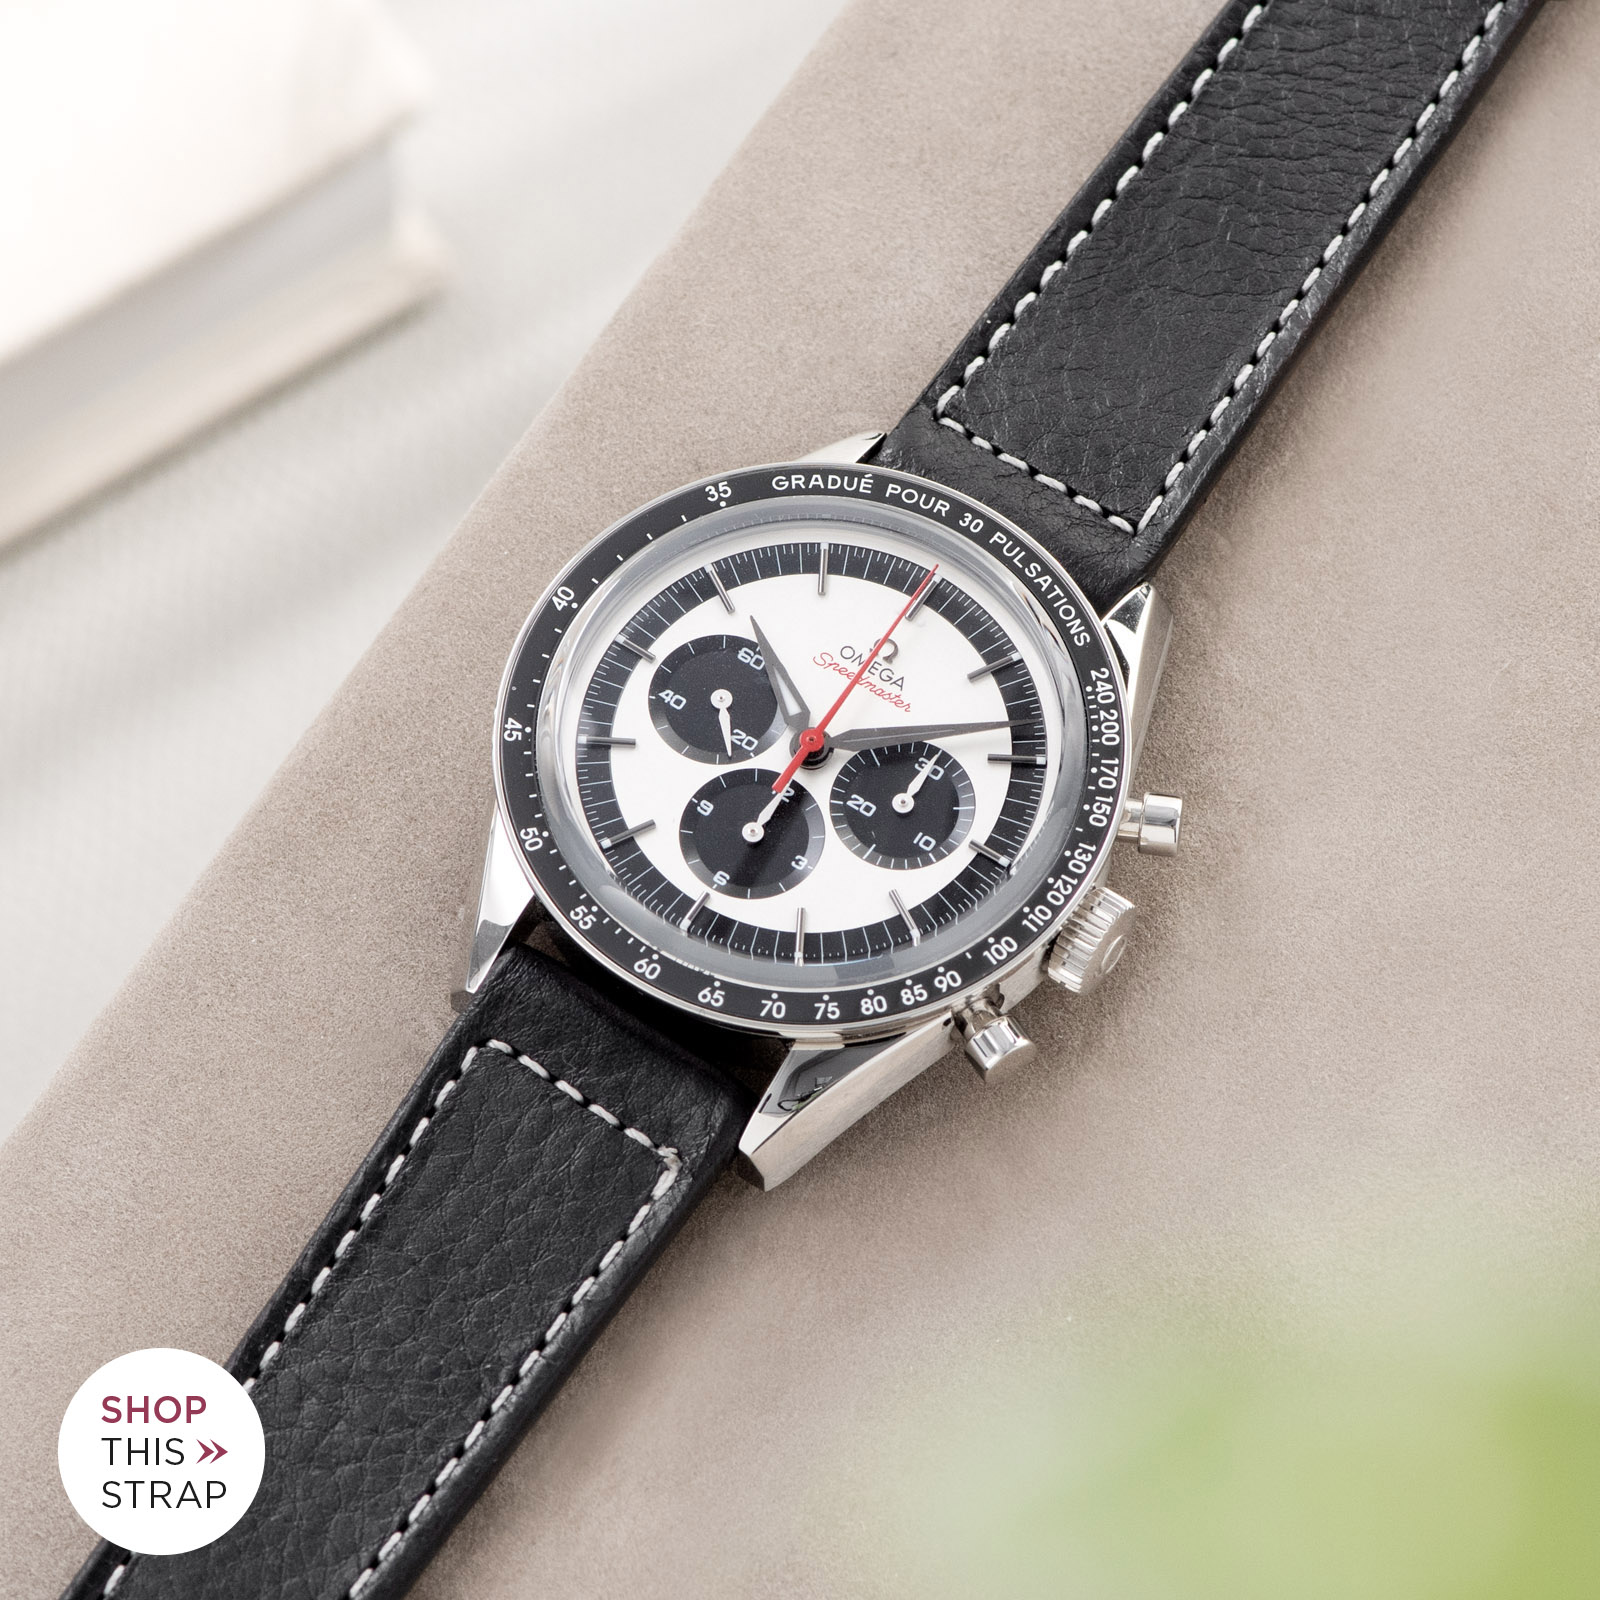 Bulang and Sons_Strap Guide_Omega Speedmaster 2998_Black Boxed Stitch Leather Watch Strap